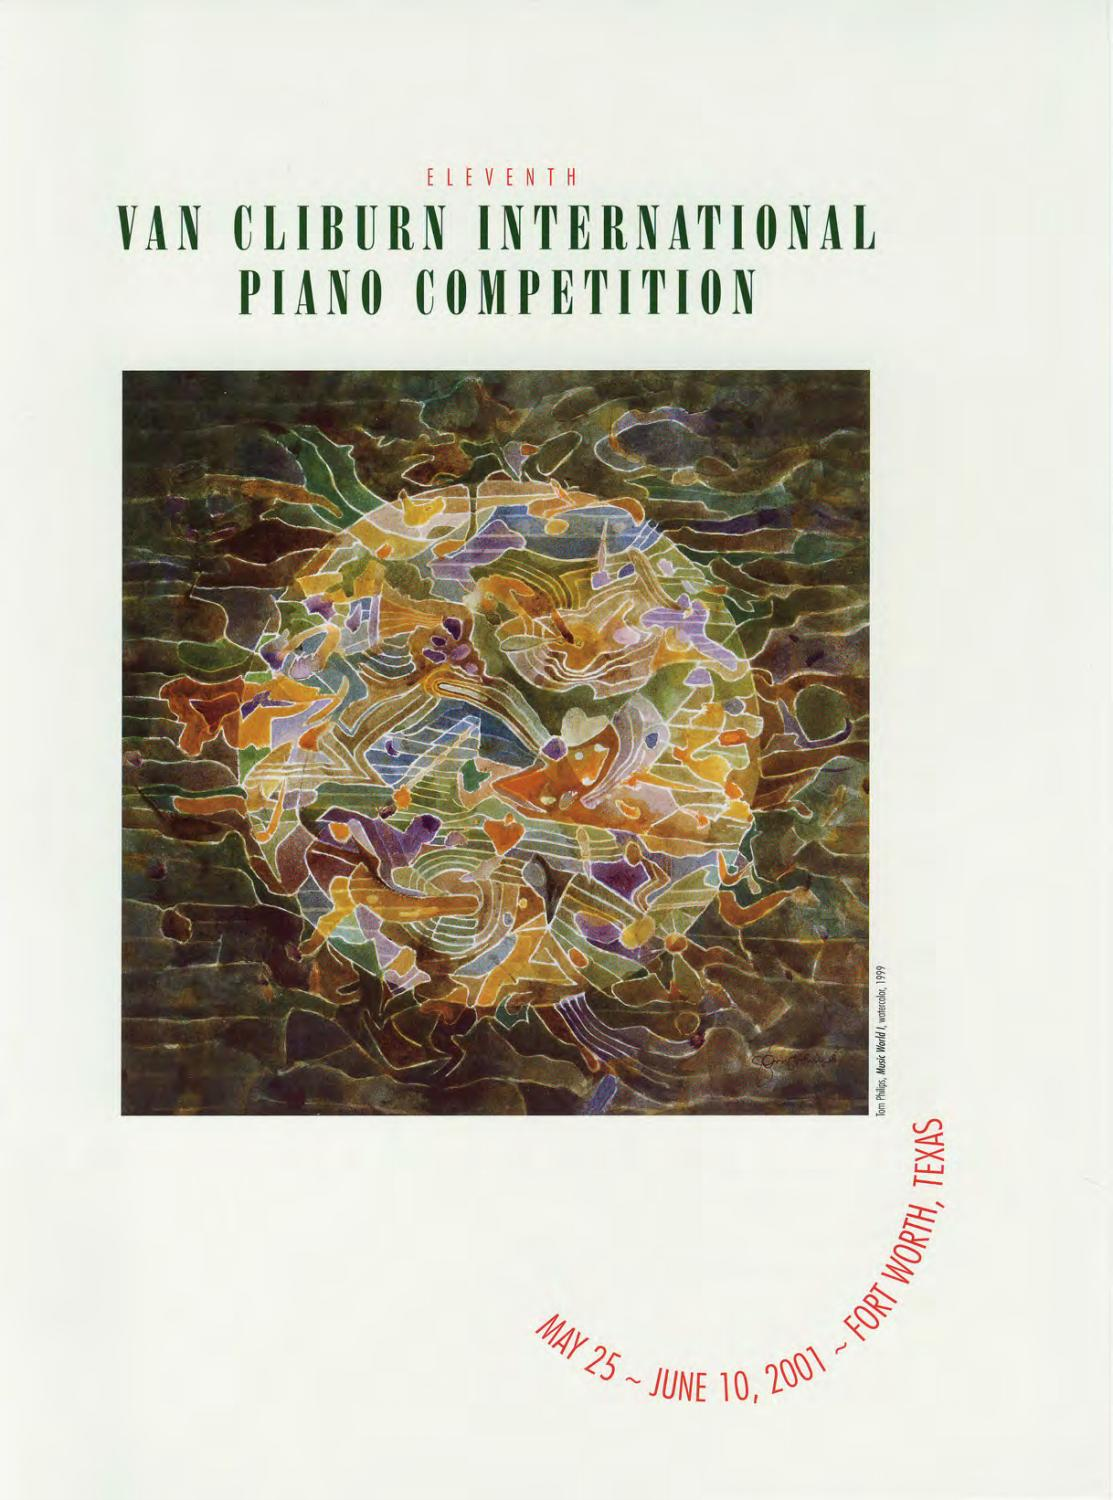 eleventh van cliburn international piano competition program bookeleventh van cliburn international piano competition program book (2001) by the cliburn issuu